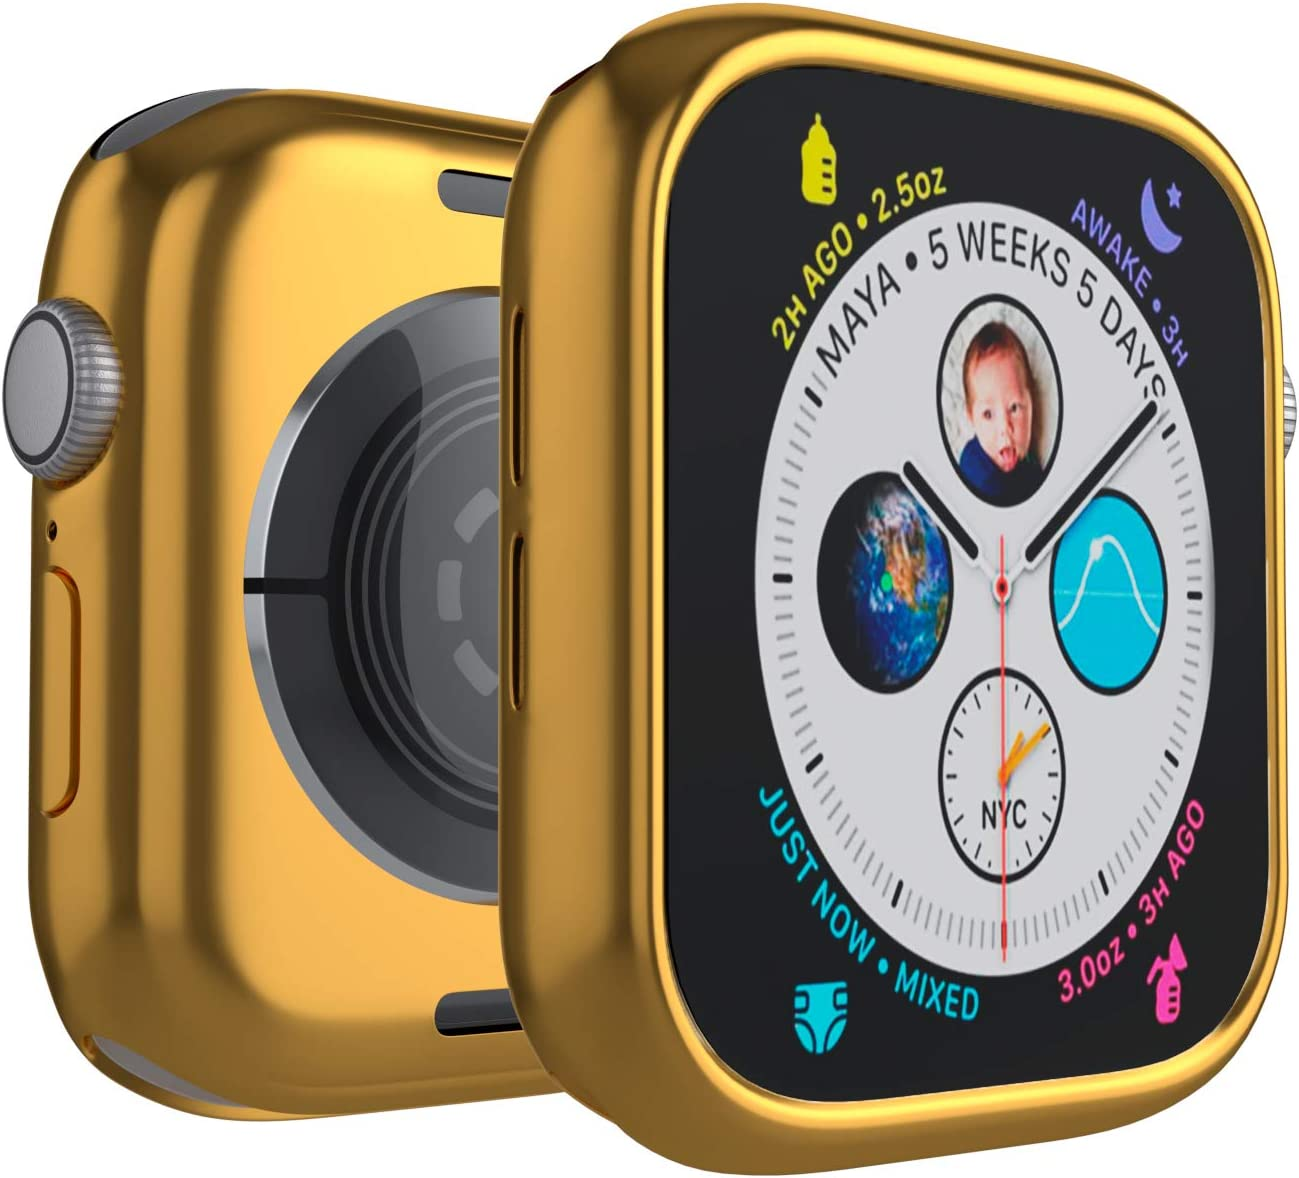 Case for Apple Watch 38mm Series 3 Series 2 Series 1 Edge Bumper Protection Soft TPU Ultra-Slim Lightweight Resistant Protective Case Cover, Gold